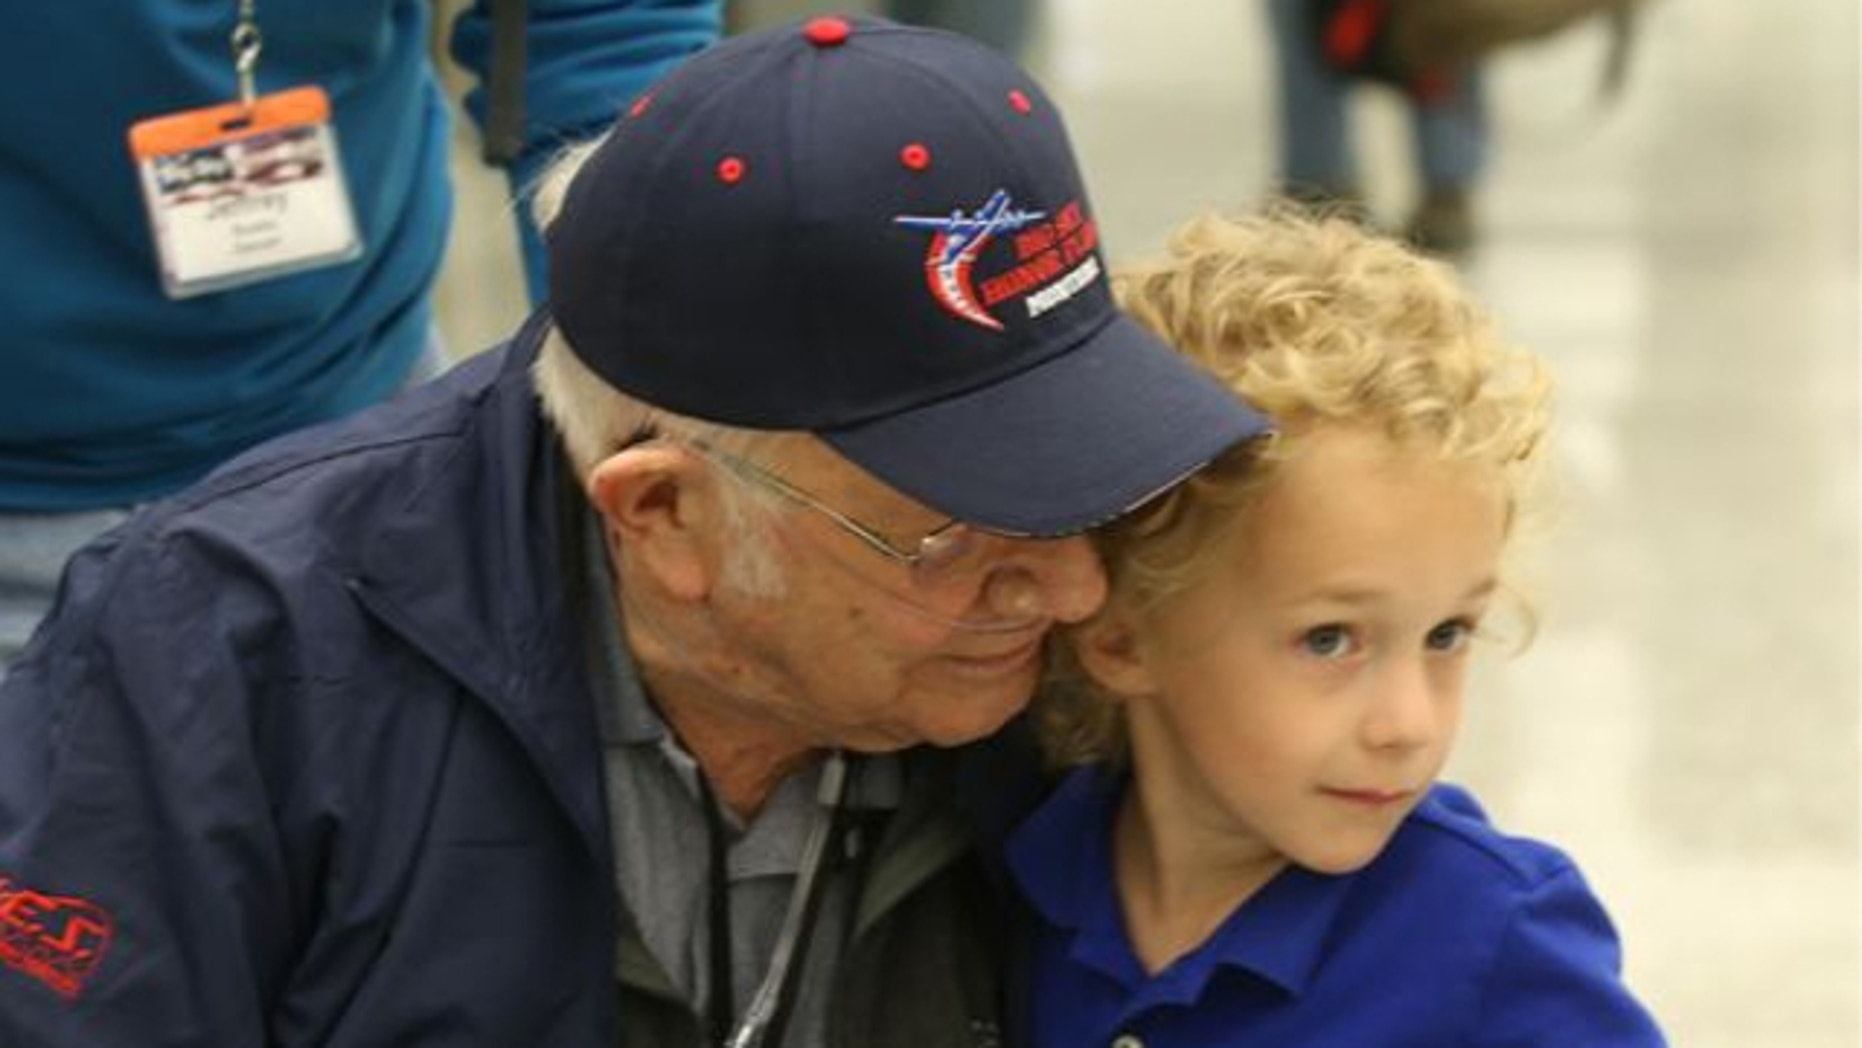 April 27, 2014: Eli Wilke, 6, gives Montana World War II veteran Donald Buska, left, a hug as he arrives at Dulles International airport in Dulles, Va. Buska fulfilled his longtime dream of traveling to Washington and visiting the National World War II Memorial with the help of Big Sky Honor Flight of Montana.